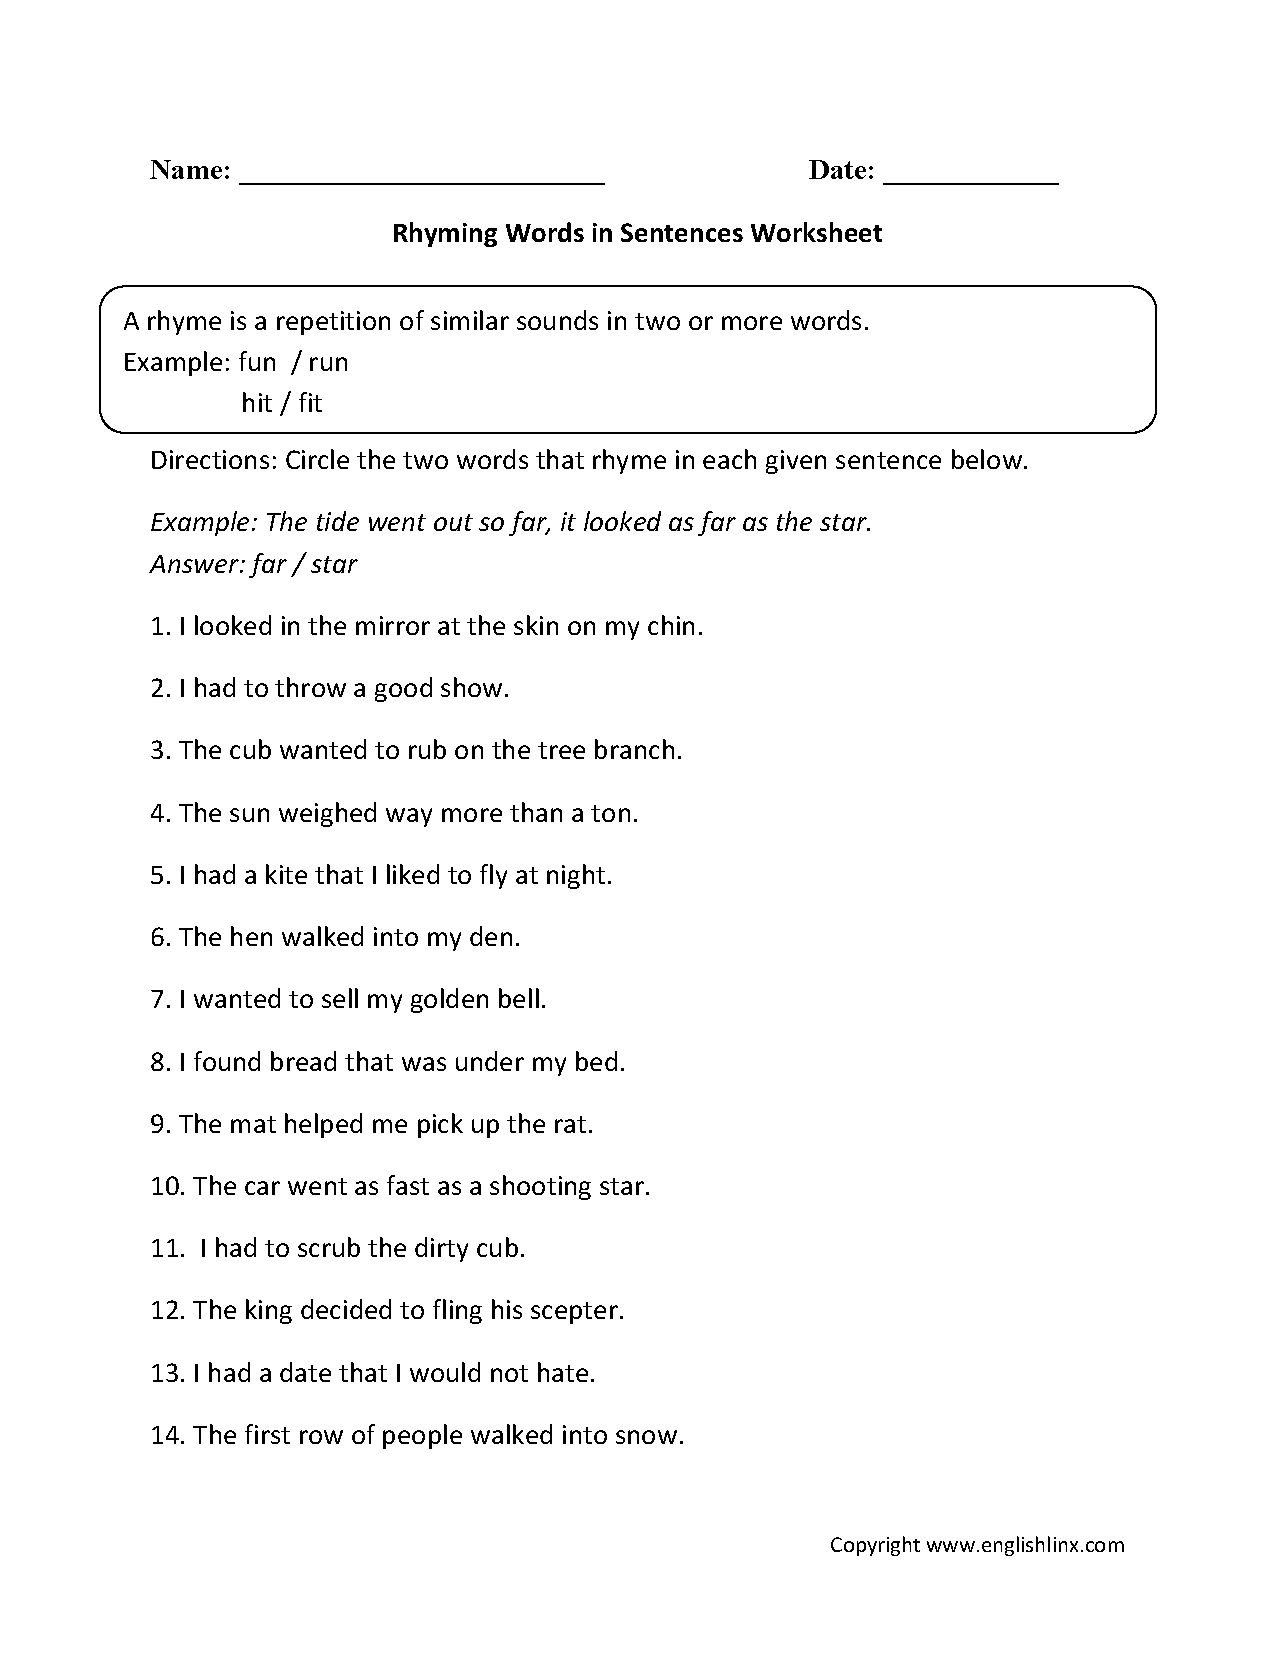 Worksheet Rhyming Words Worksheet englishlinx com rhyming worksheets words in sentences worksheet